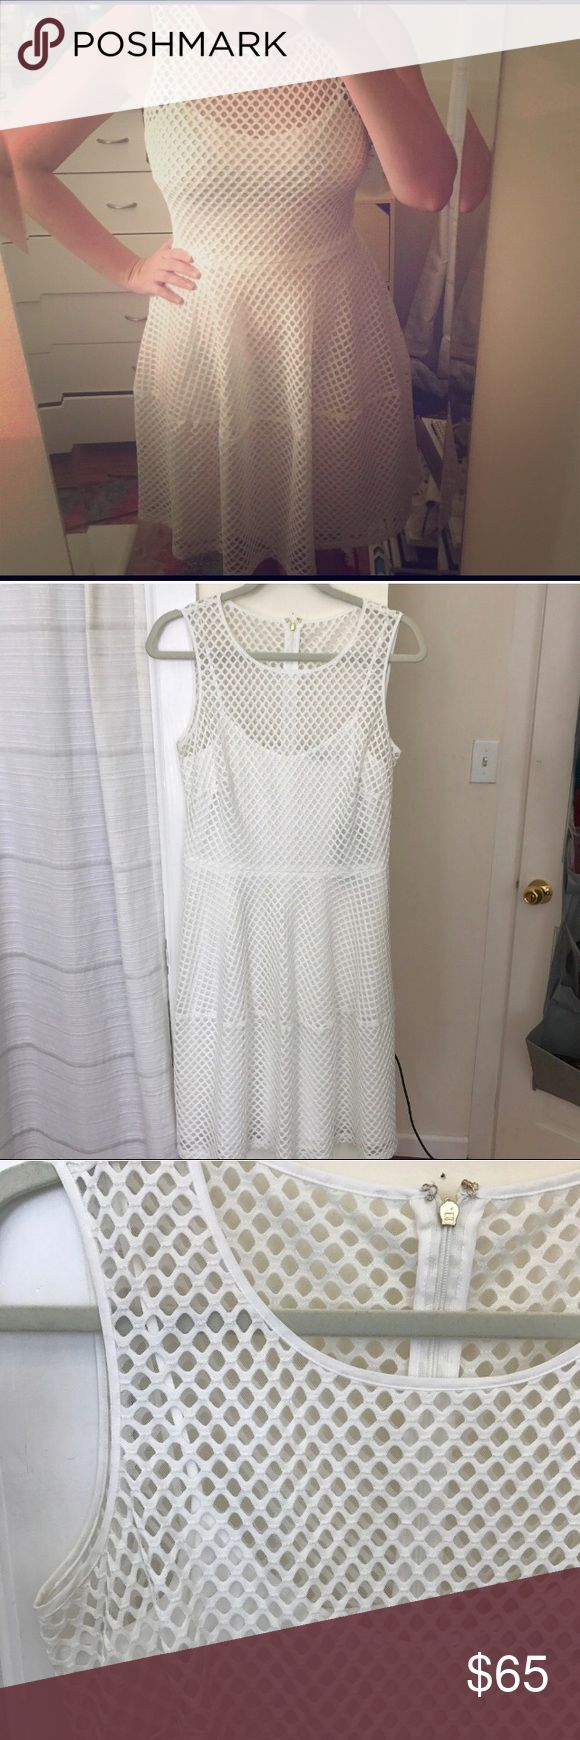 Tommy Hilfiger Mesh A-like Dress Solid white dress with mesh/netted overlay. Size 8. New with tags however purchased from sample sale in NYC so no official tags or washing instructions tag. Sample means it may have never gone into production too -so who knows this may be a one of a kind 😍! Tommy Hilfiger Dresses Midi